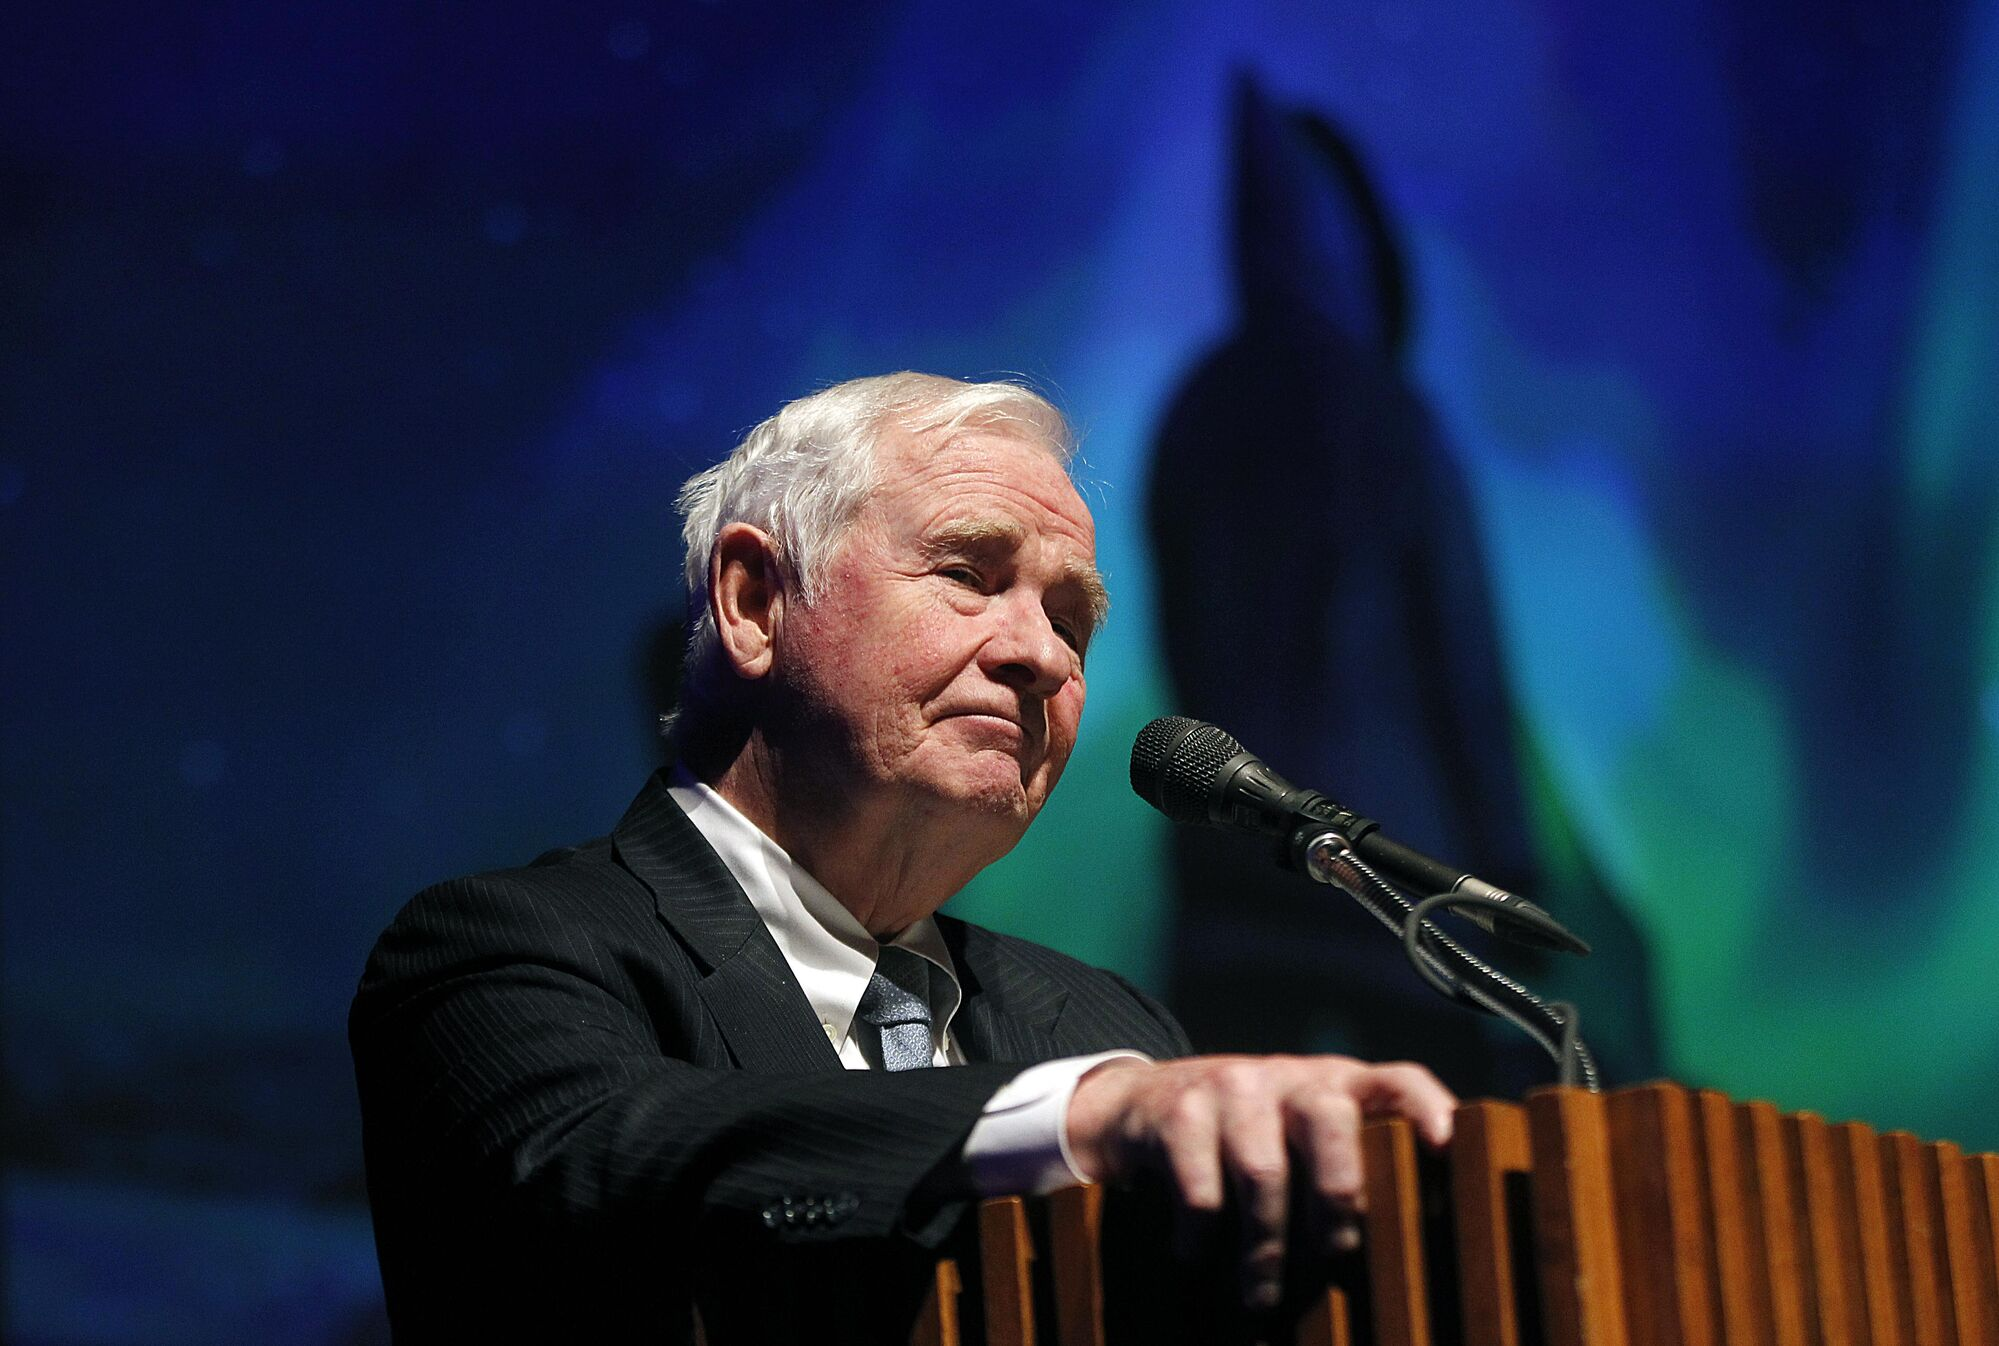 PHIL HOSSACK / WINNIPEG FREE PRESS</p> His Excellency the Right Honourable David Johnston, Governor General of Canada opens the evening&#39;s performances at the Arctic Inspiration Prize Gala Thursday evening at the Centennial Concert Hall.